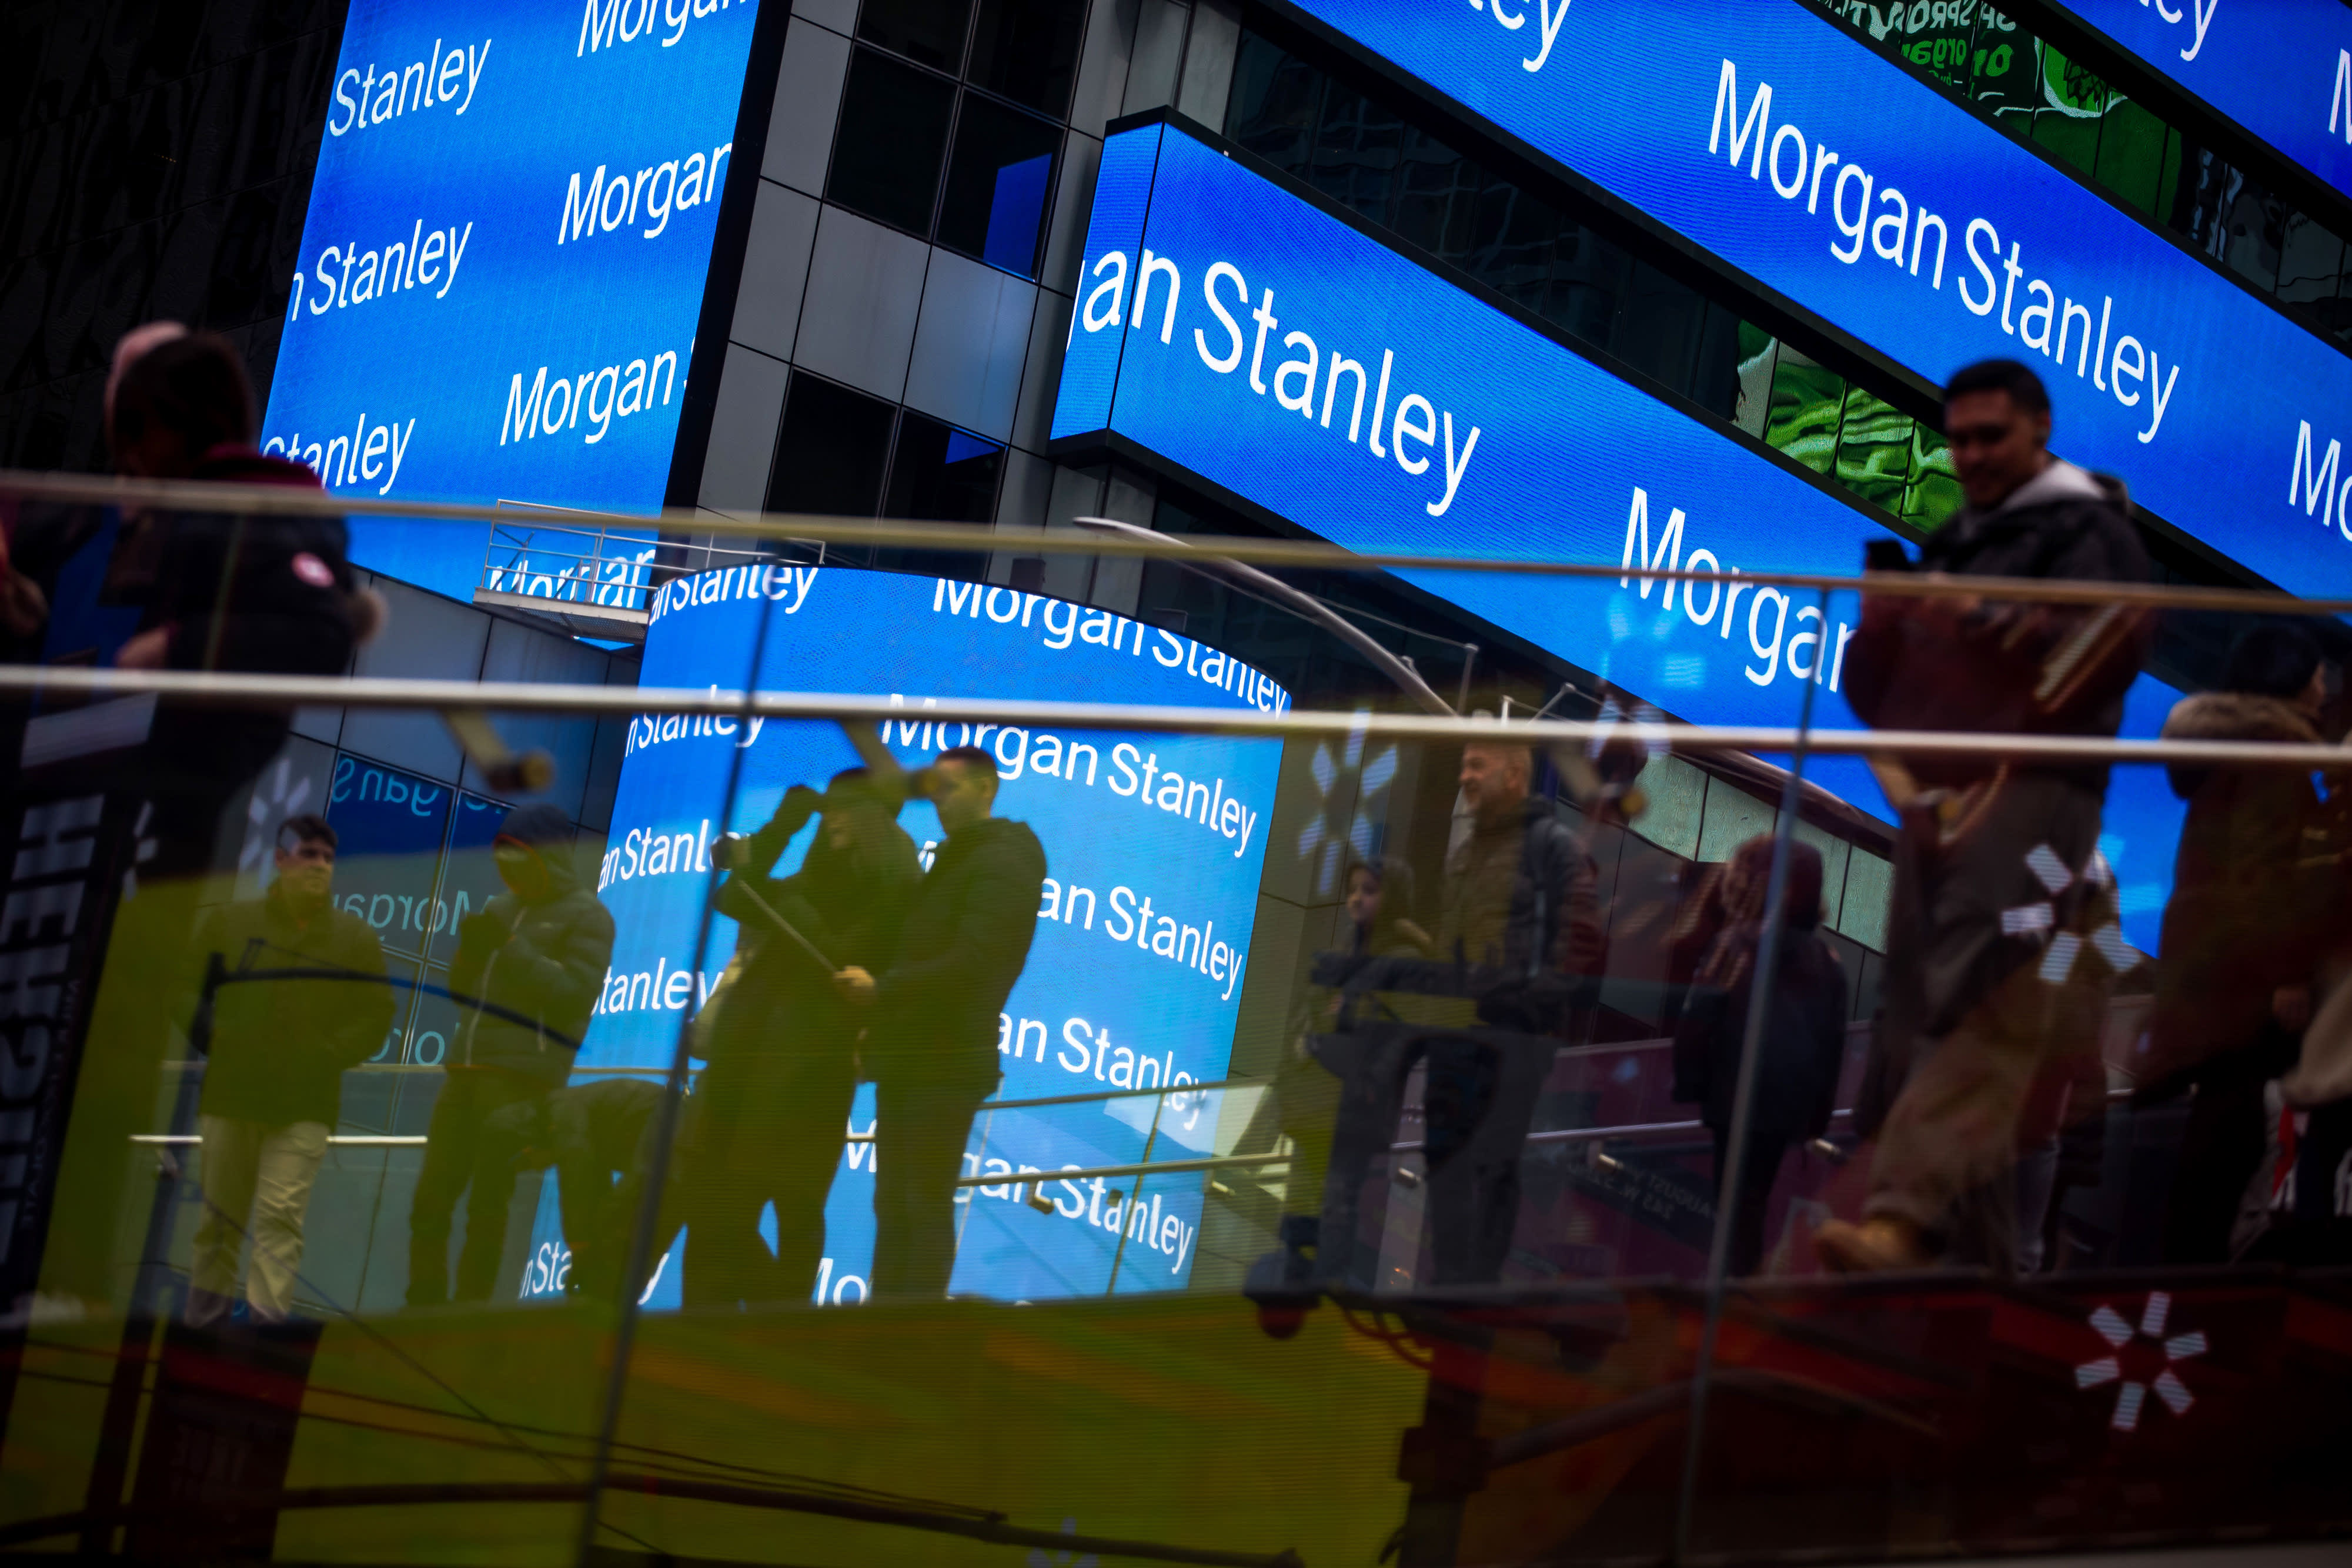 Morgan Stanley is planning to bring traders back to New York headquarters next month, sources say